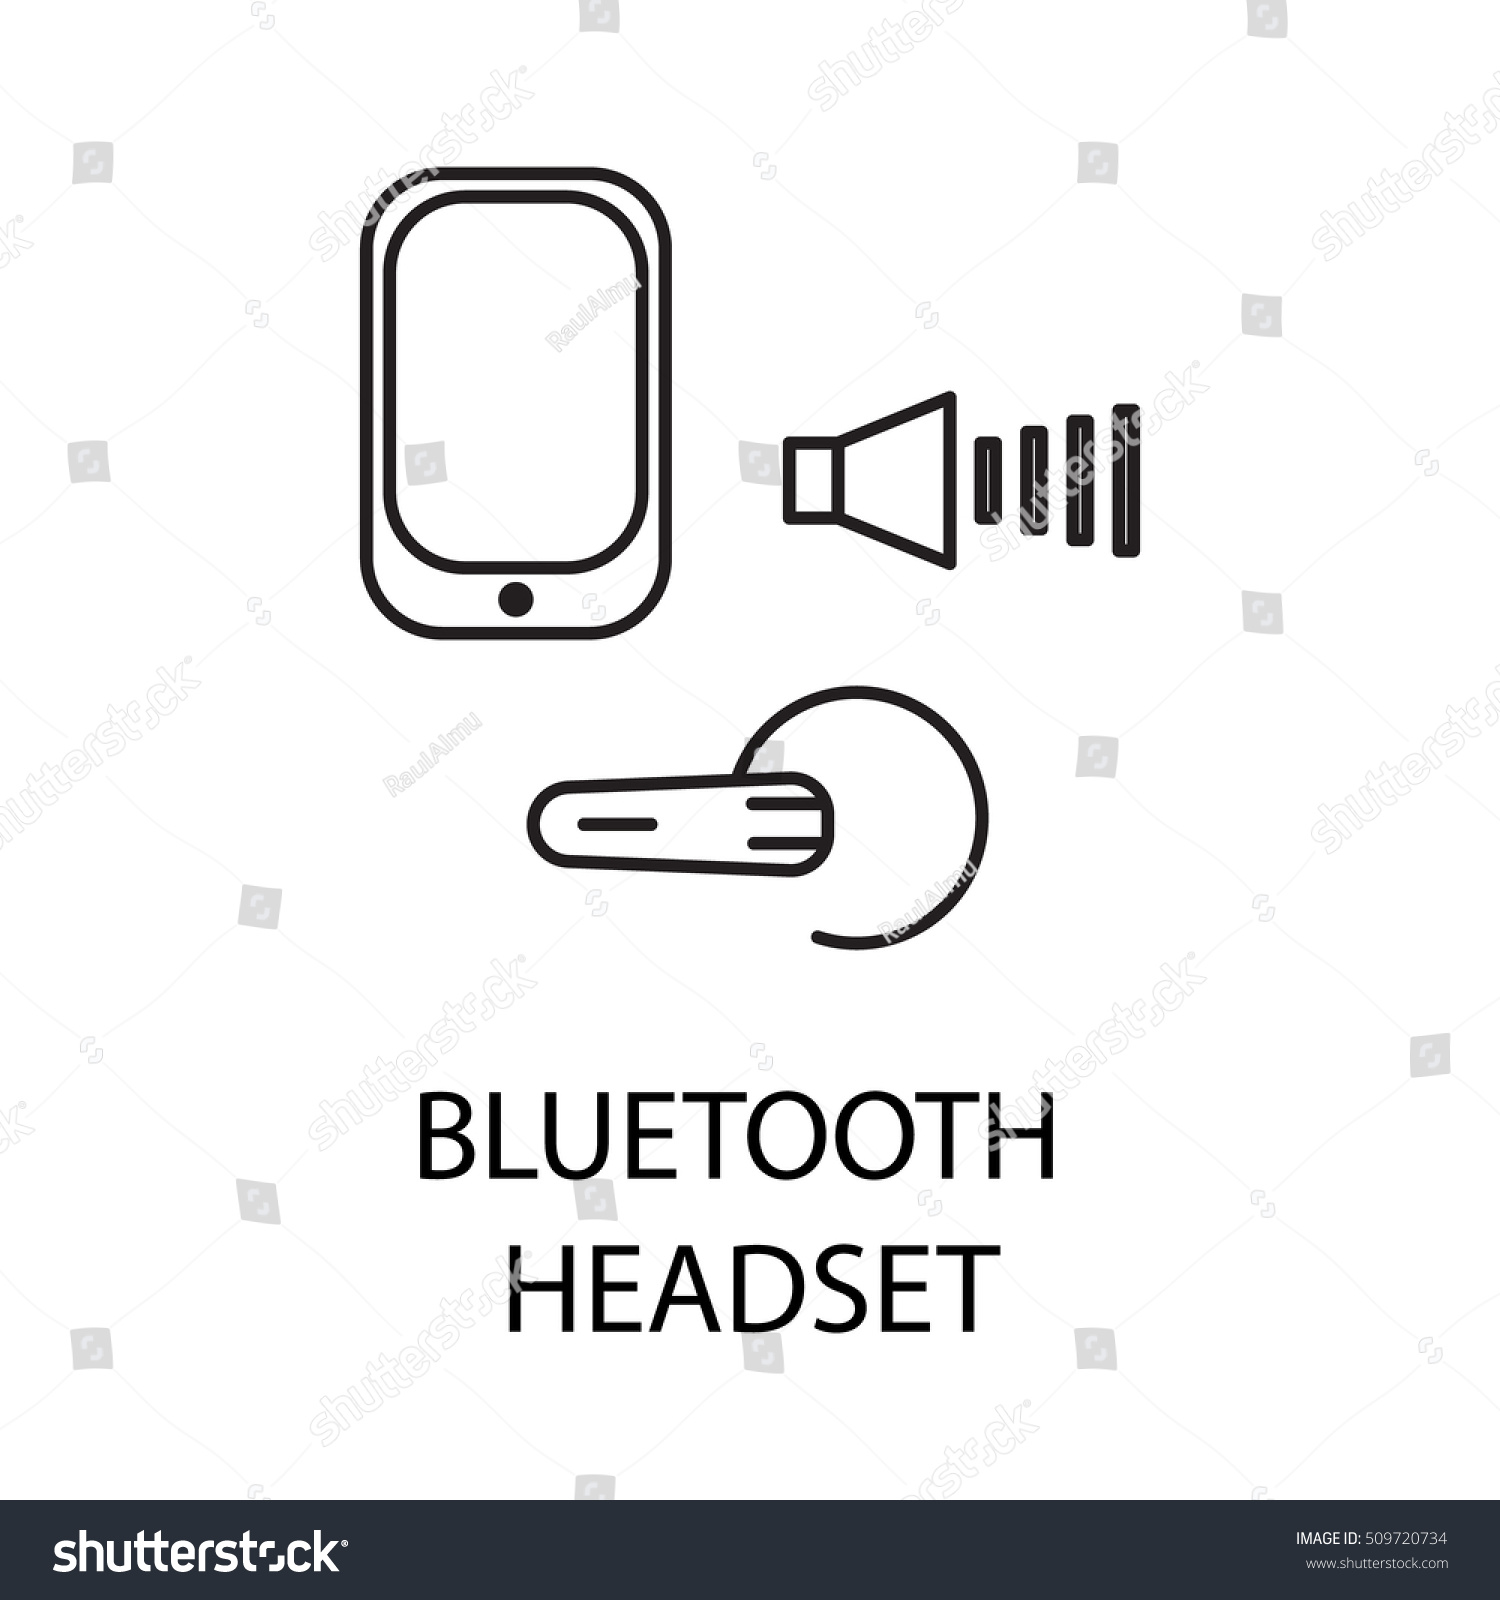 Bluetooth Headset Line Icon Vector Symbol Stock Royalty Free Circuit Diagram On The Topic Of Personal Devices Black Minimalist